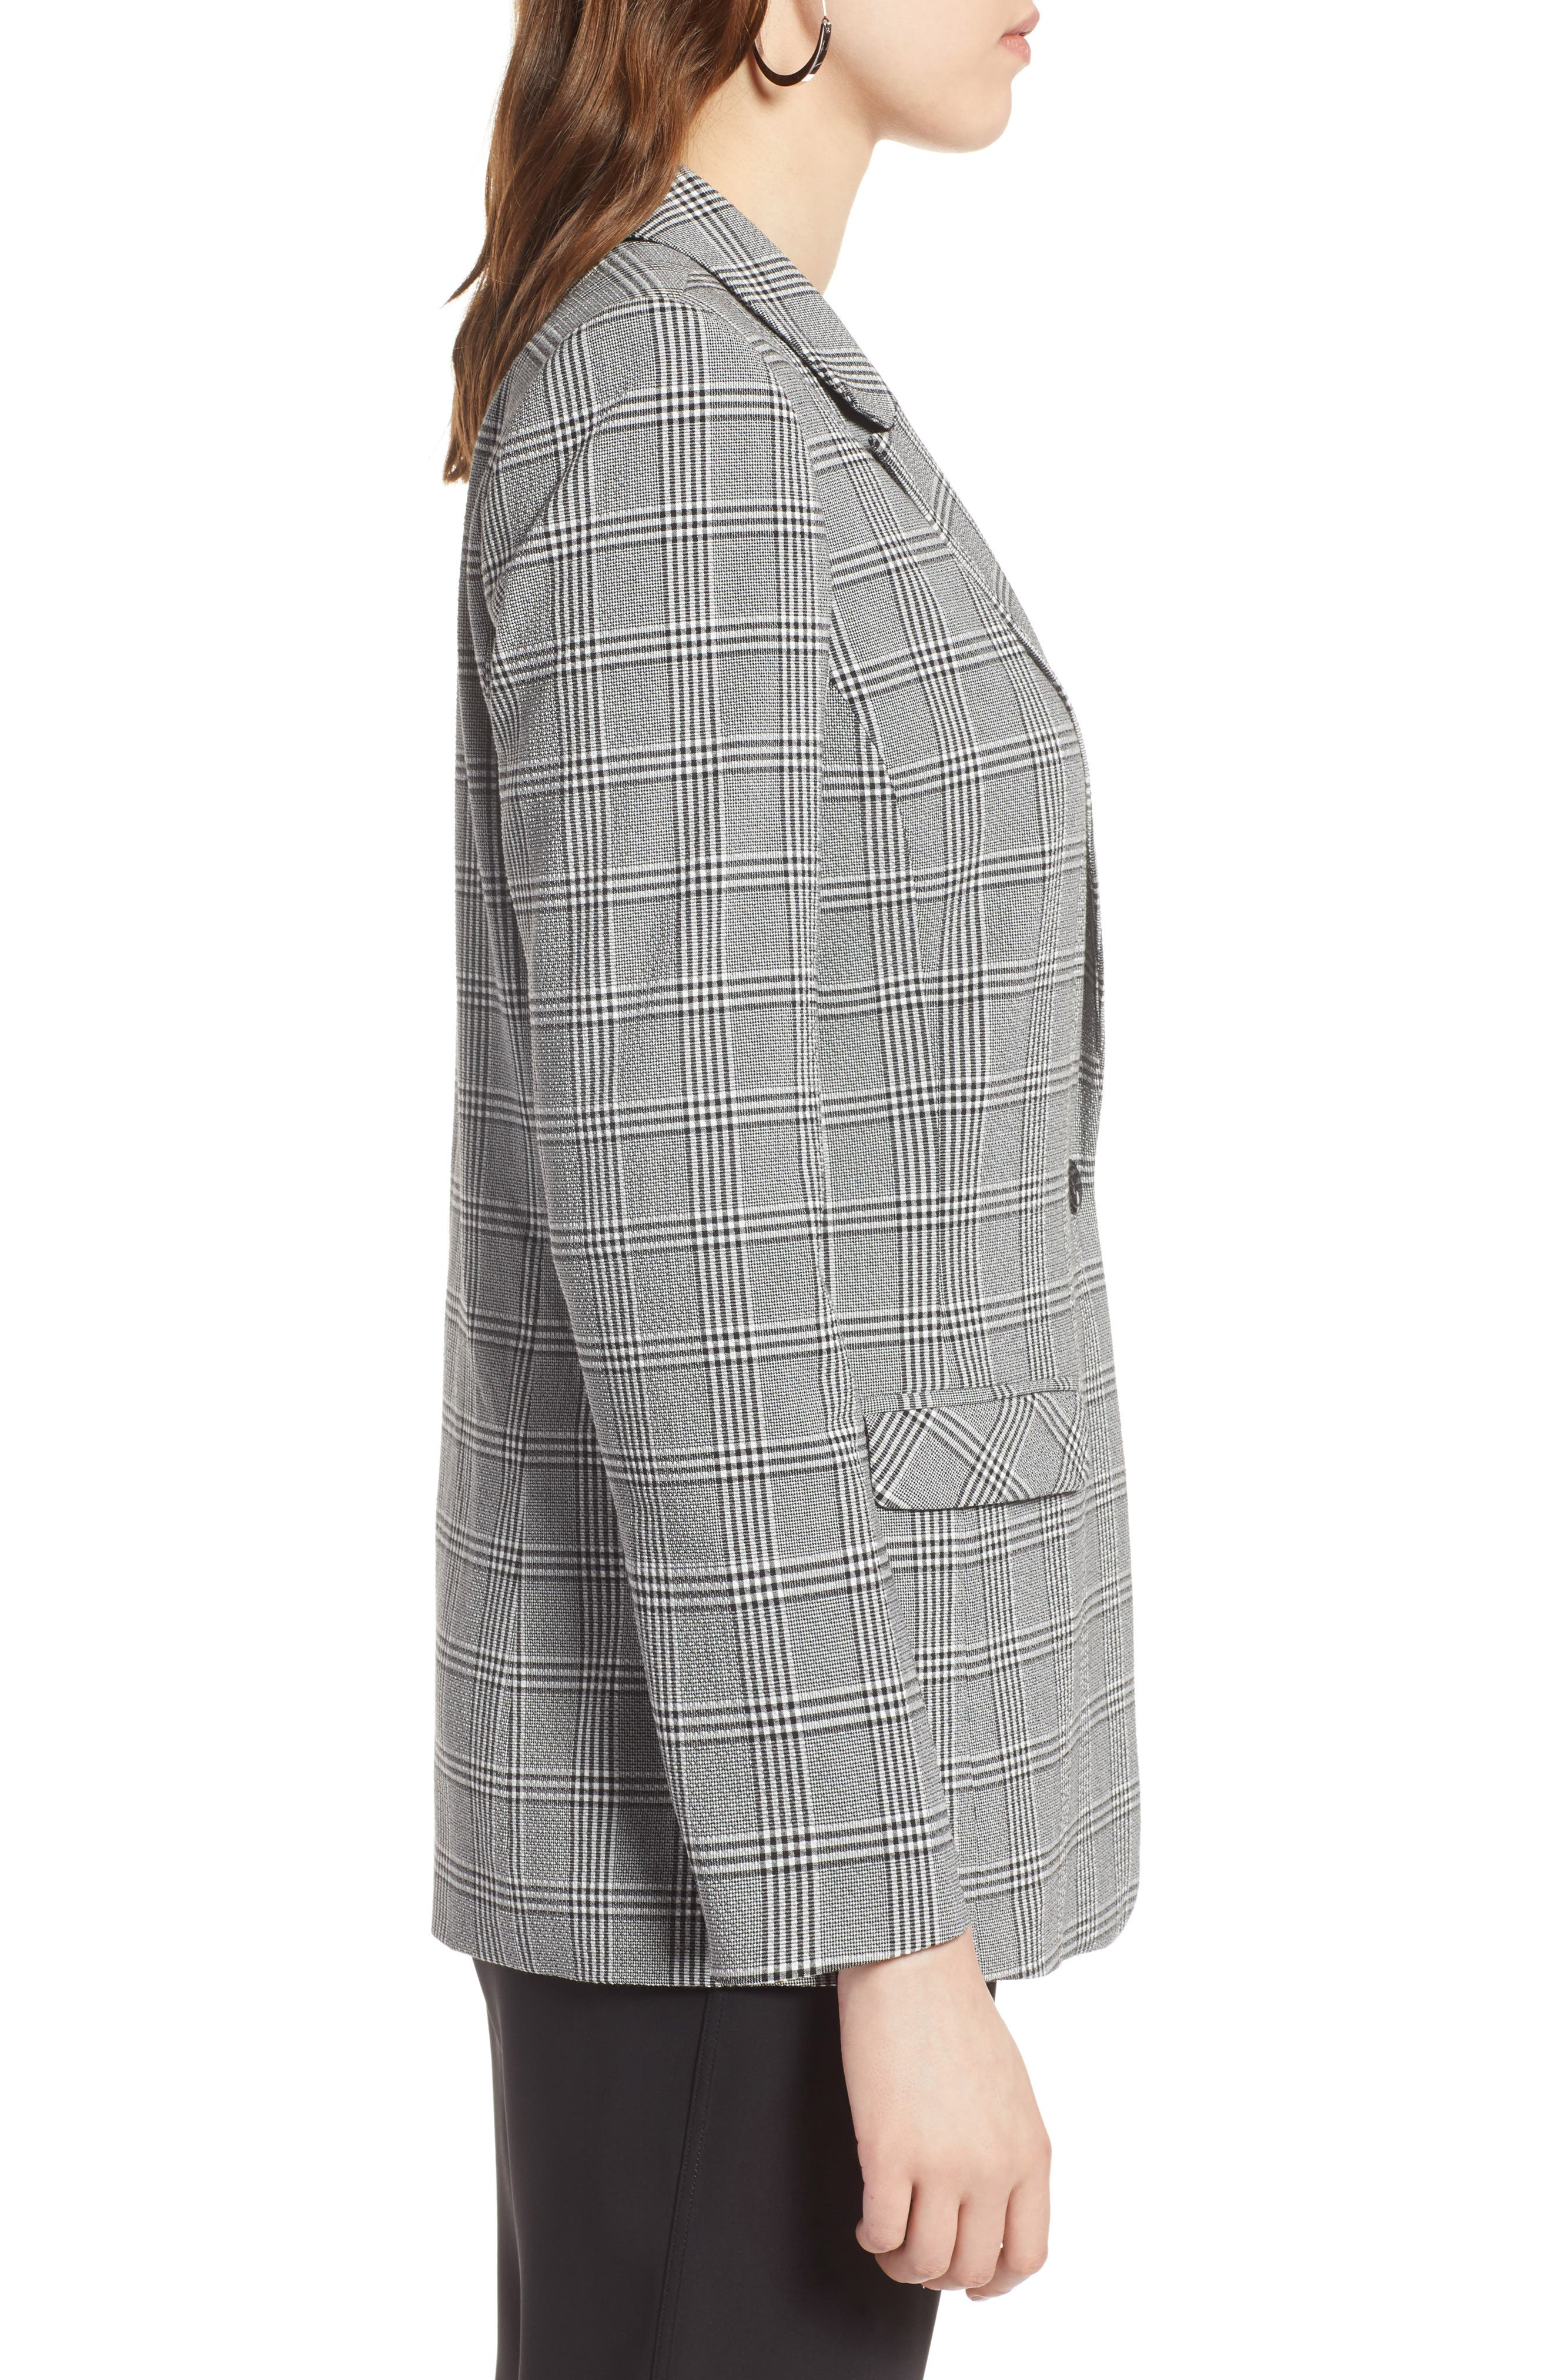 Glen Plaid Blazer,                             Alternate thumbnail 3, color,                             Black- White Glen Check